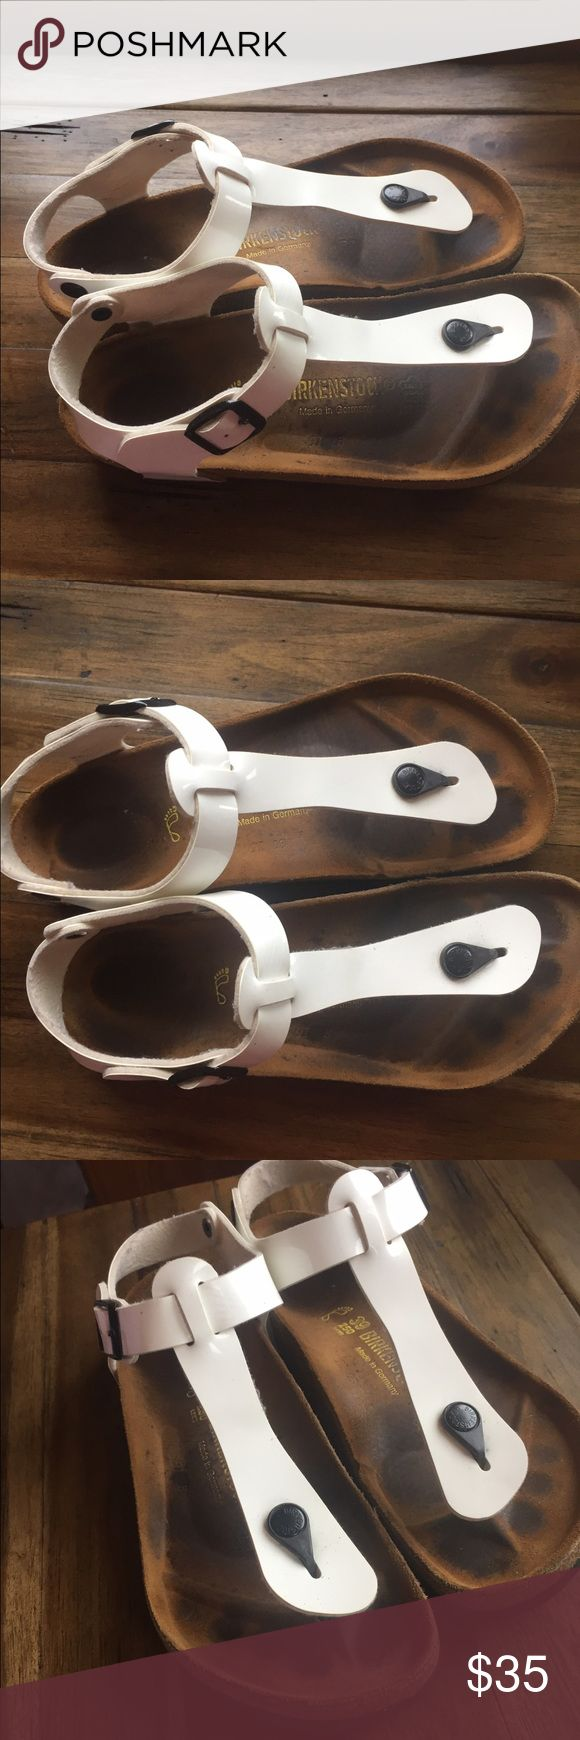 White Birkenstock sandals Closet clean out- selling everything I haven't used in the past year. Good conditions and great deals! Birkenstock Shoes Sandals